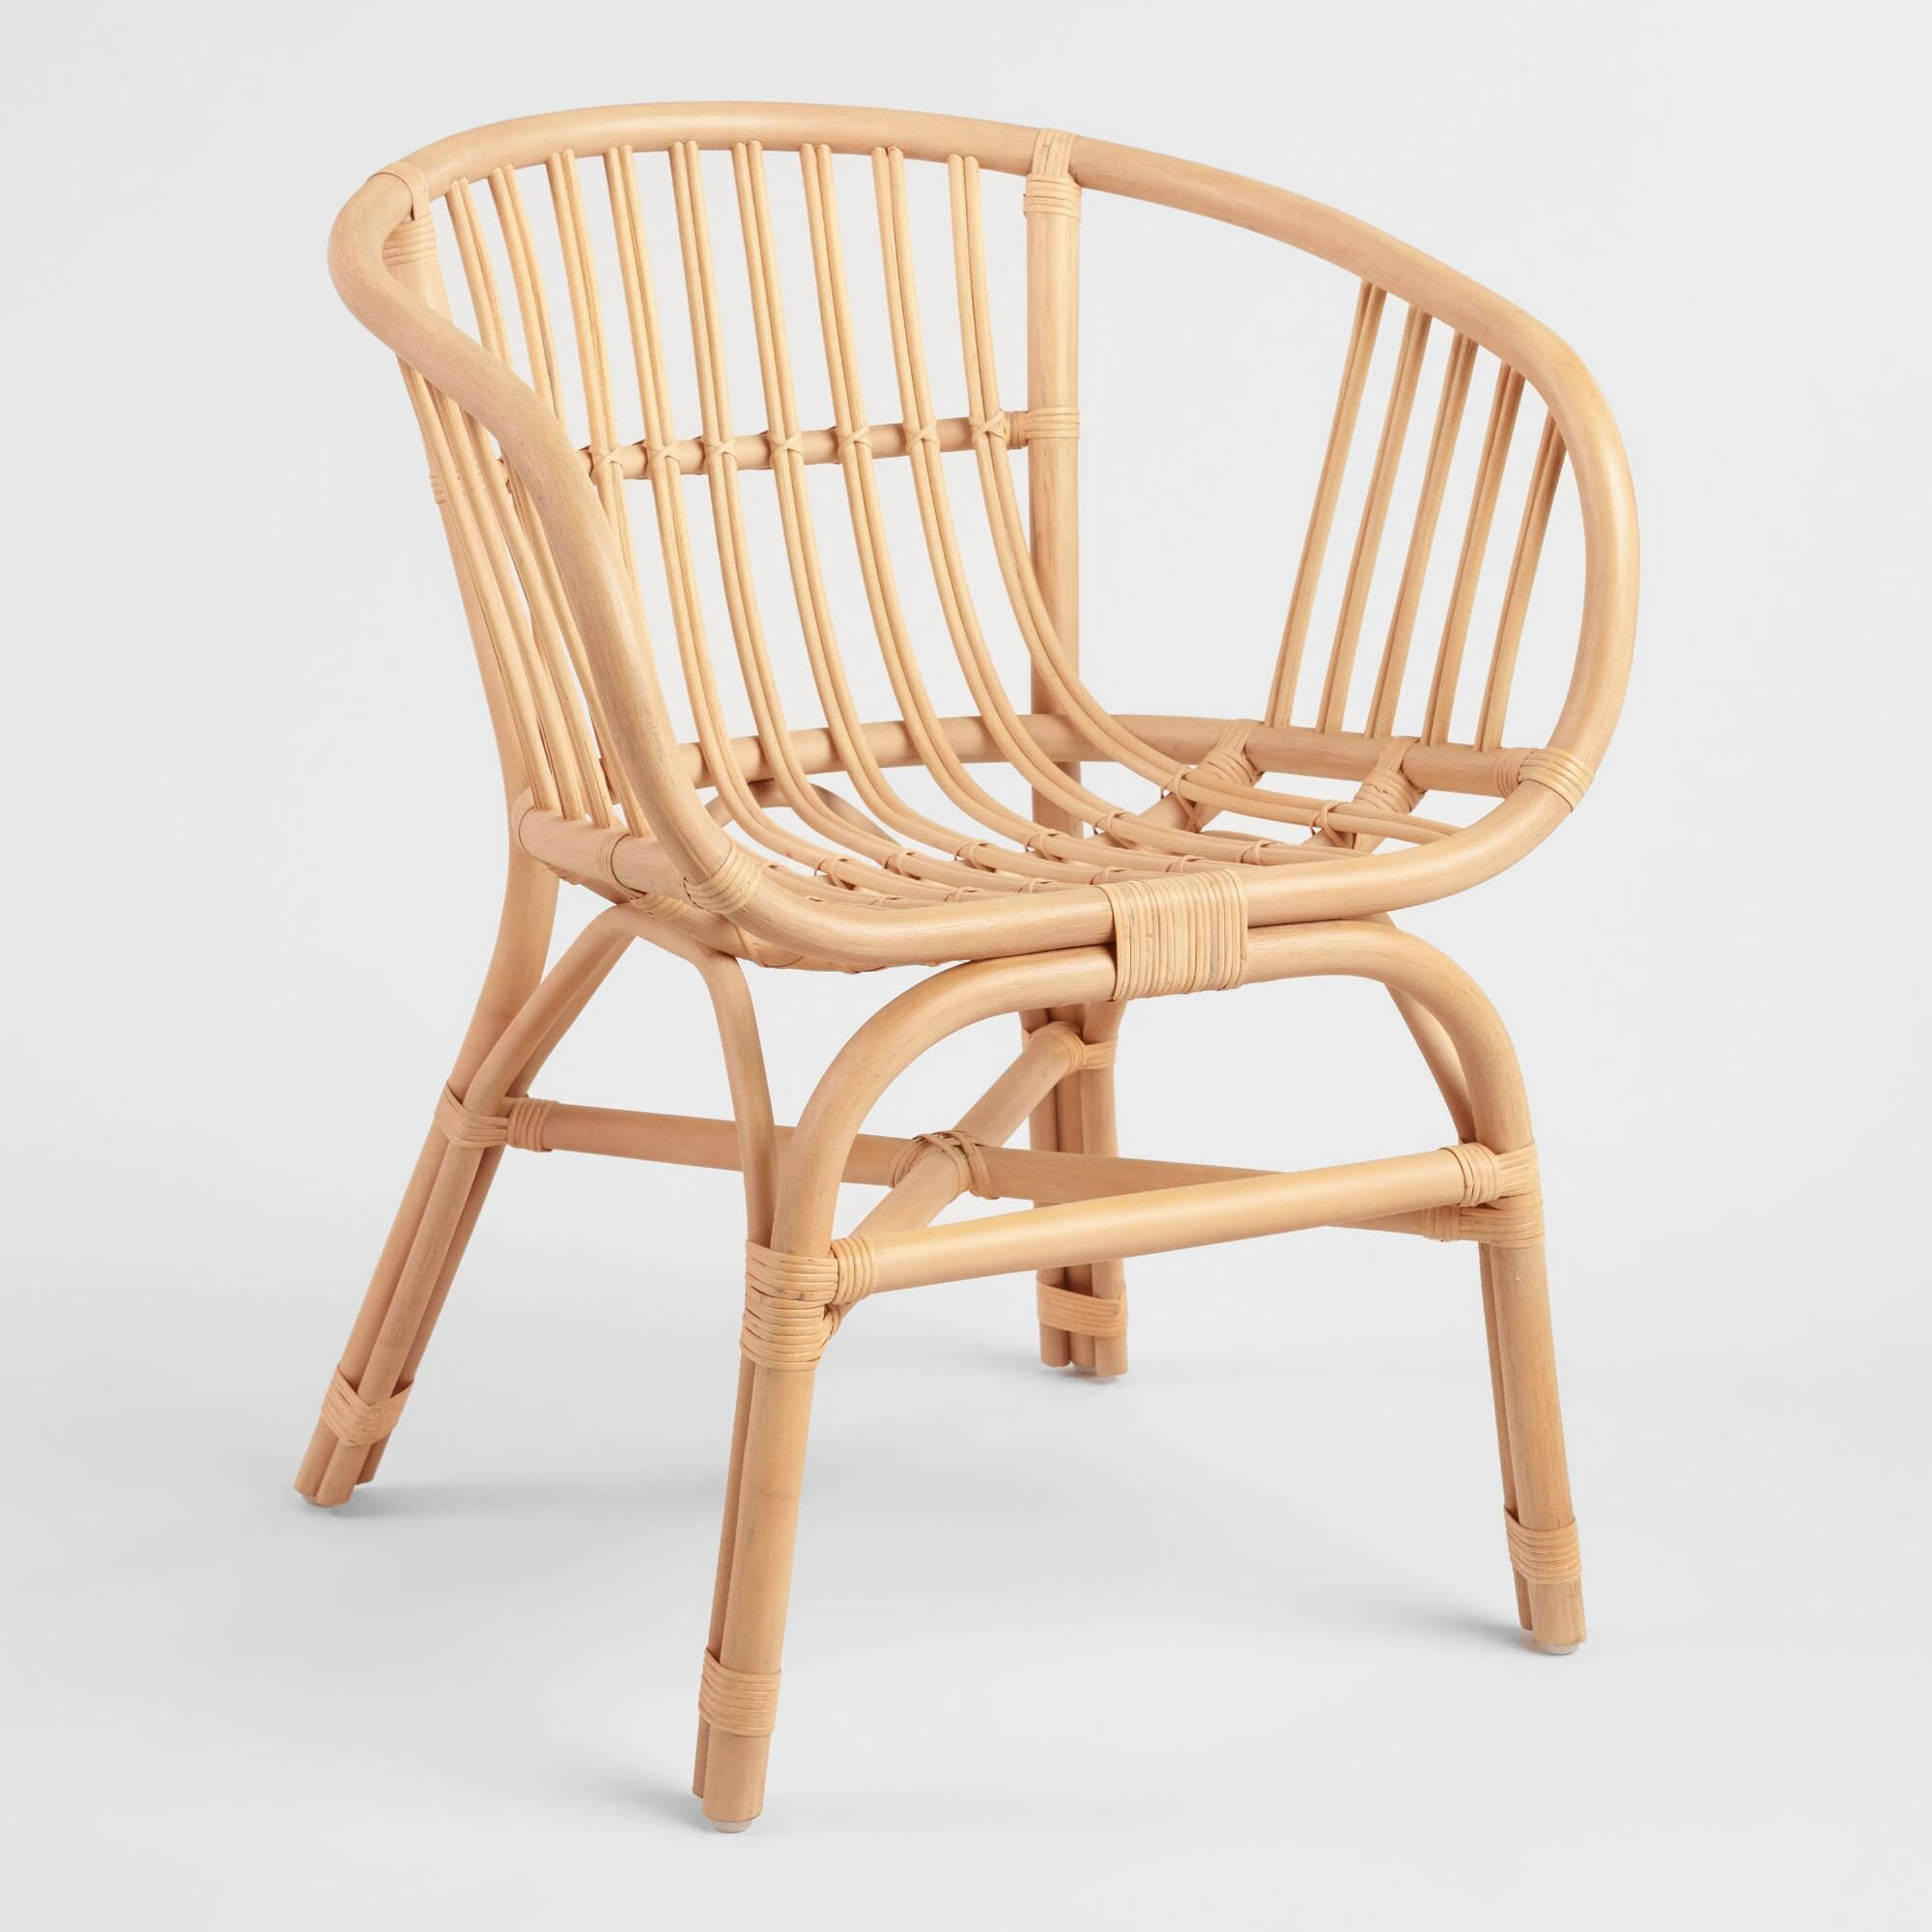 Natural Rattan Rachelle Chair Set Of 2 By World Market In